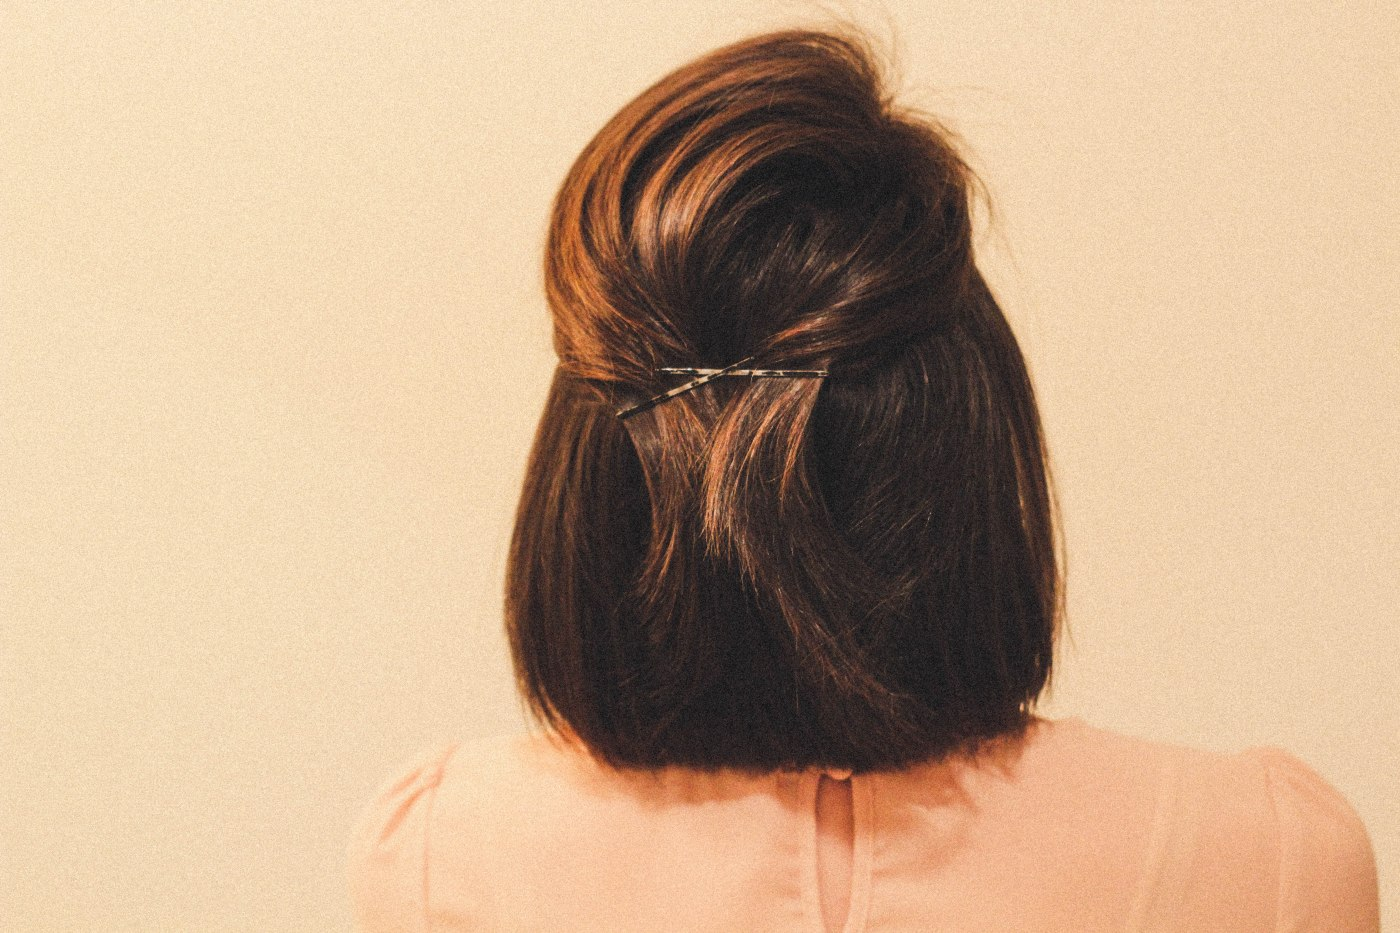 LaurenConnnellyPhoto-6